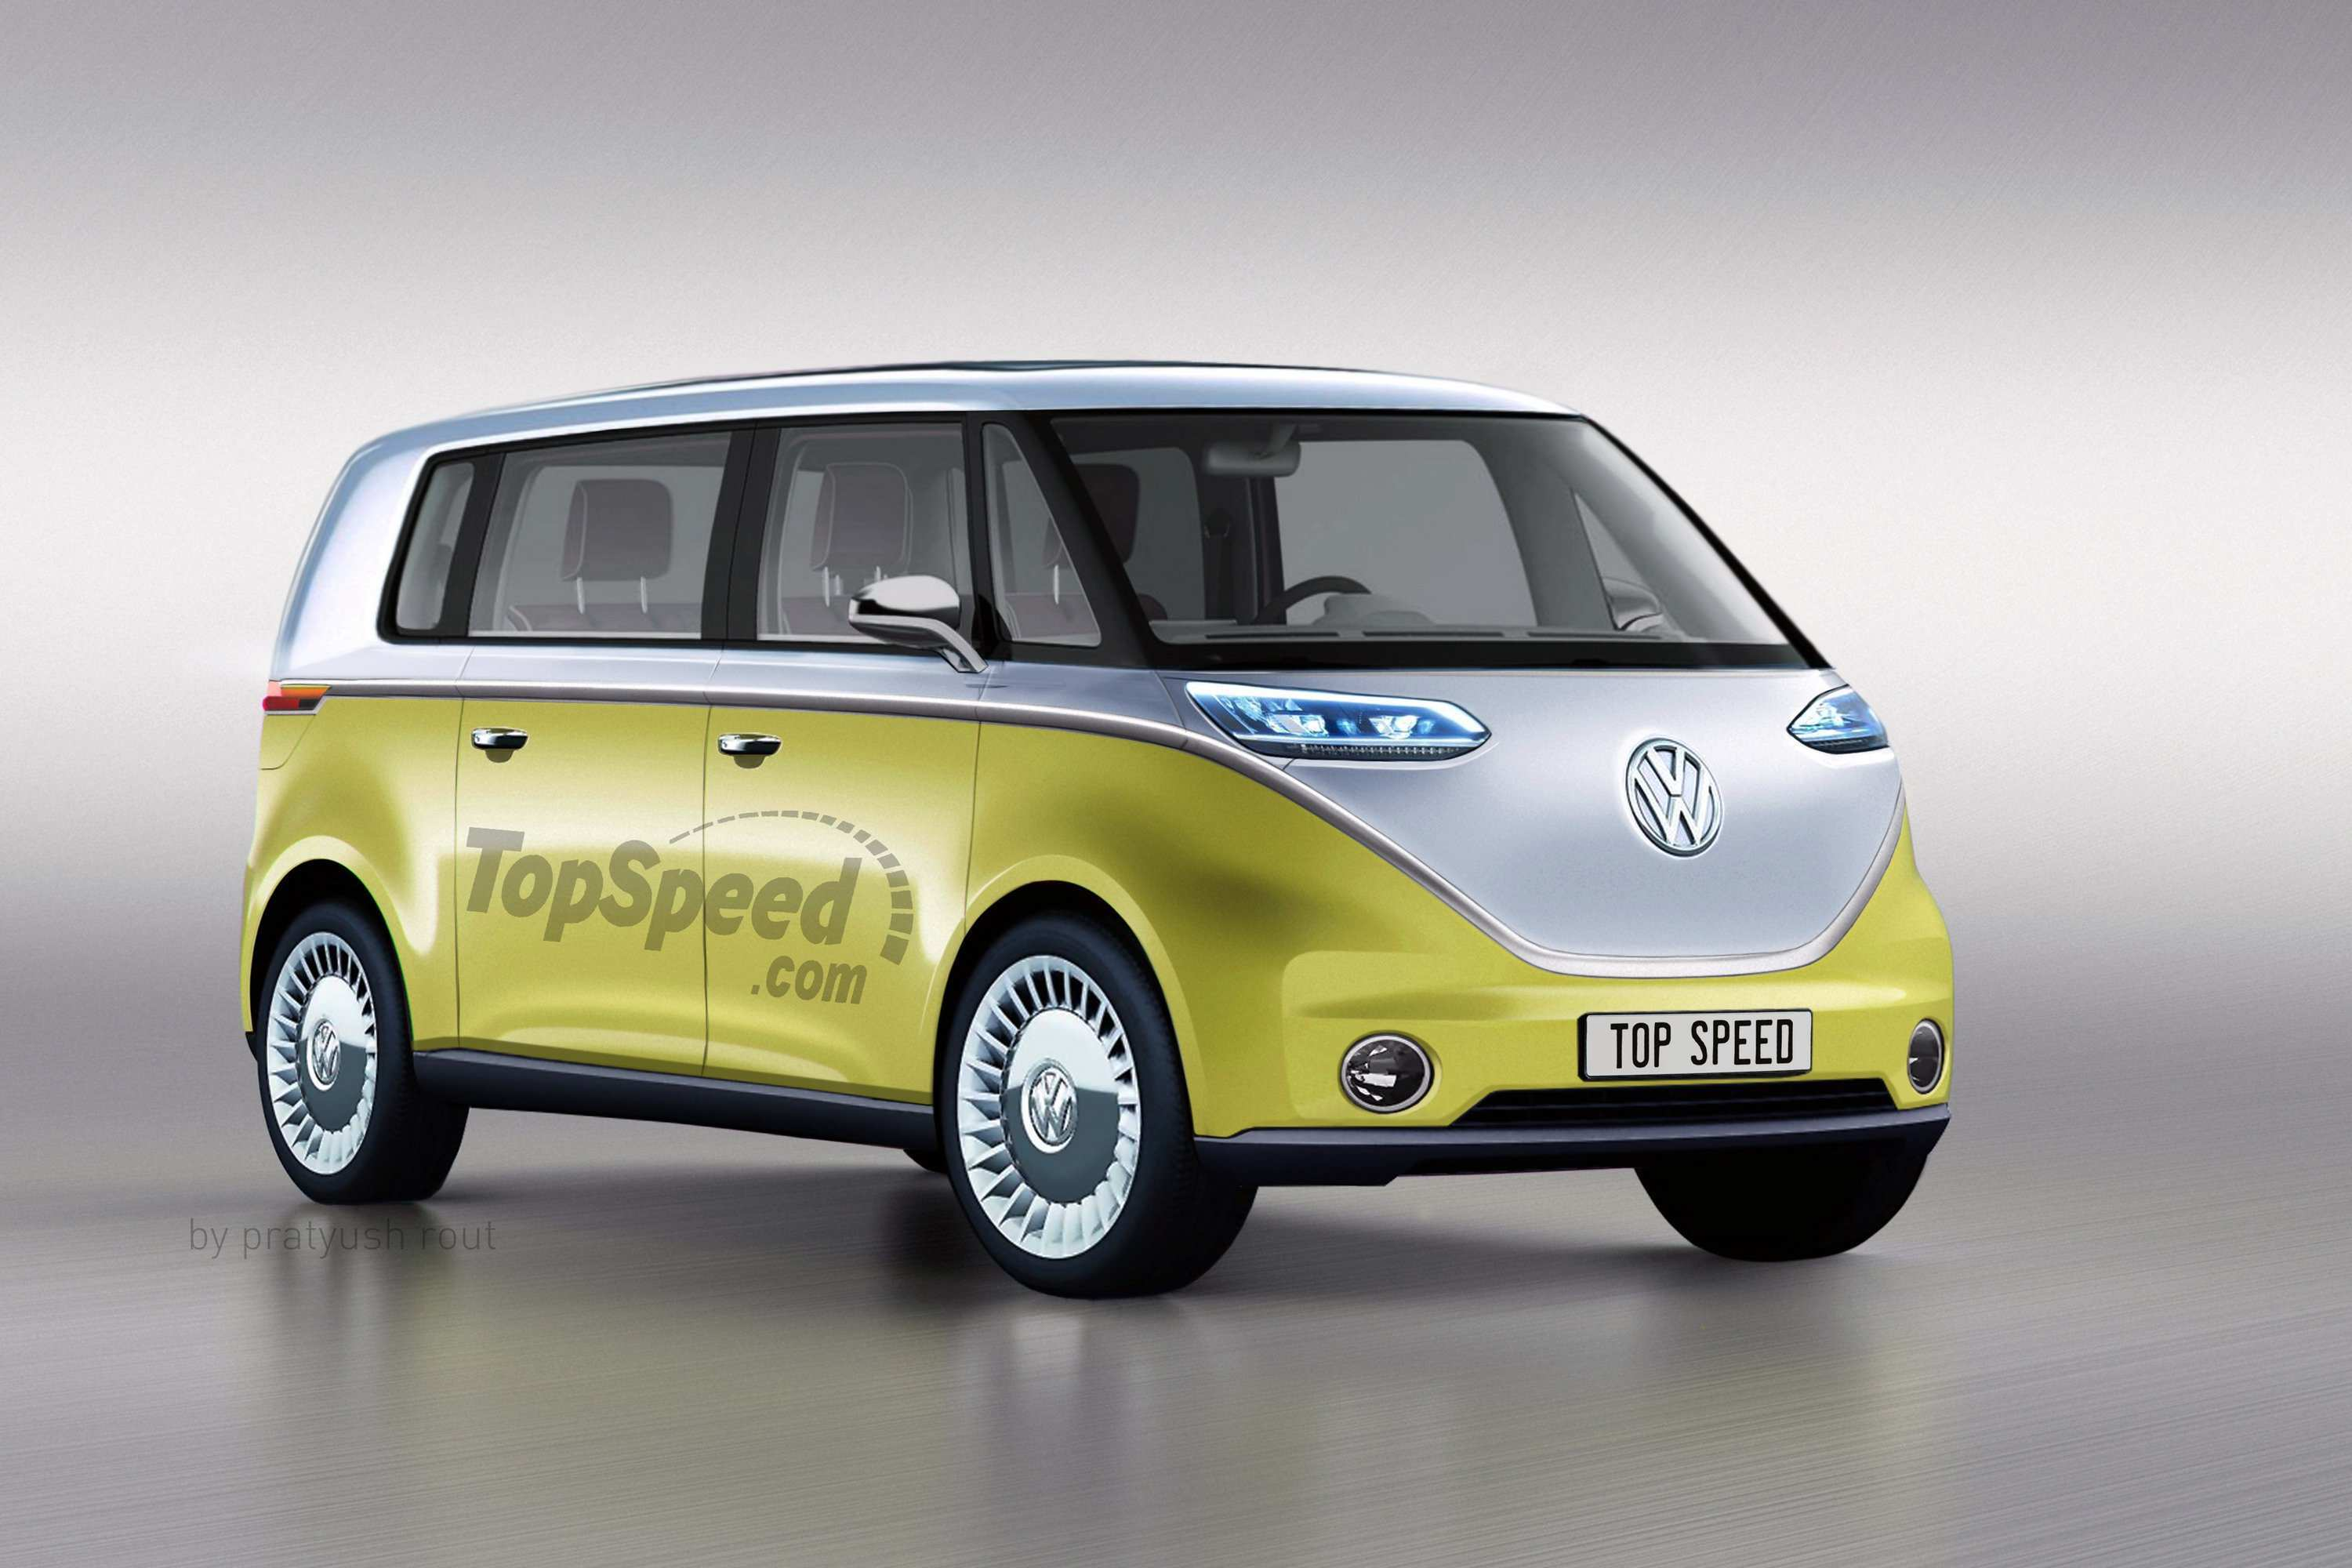 20 Gallery of Volkswagen Vanagon 2020 Price with Volkswagen Vanagon 2020